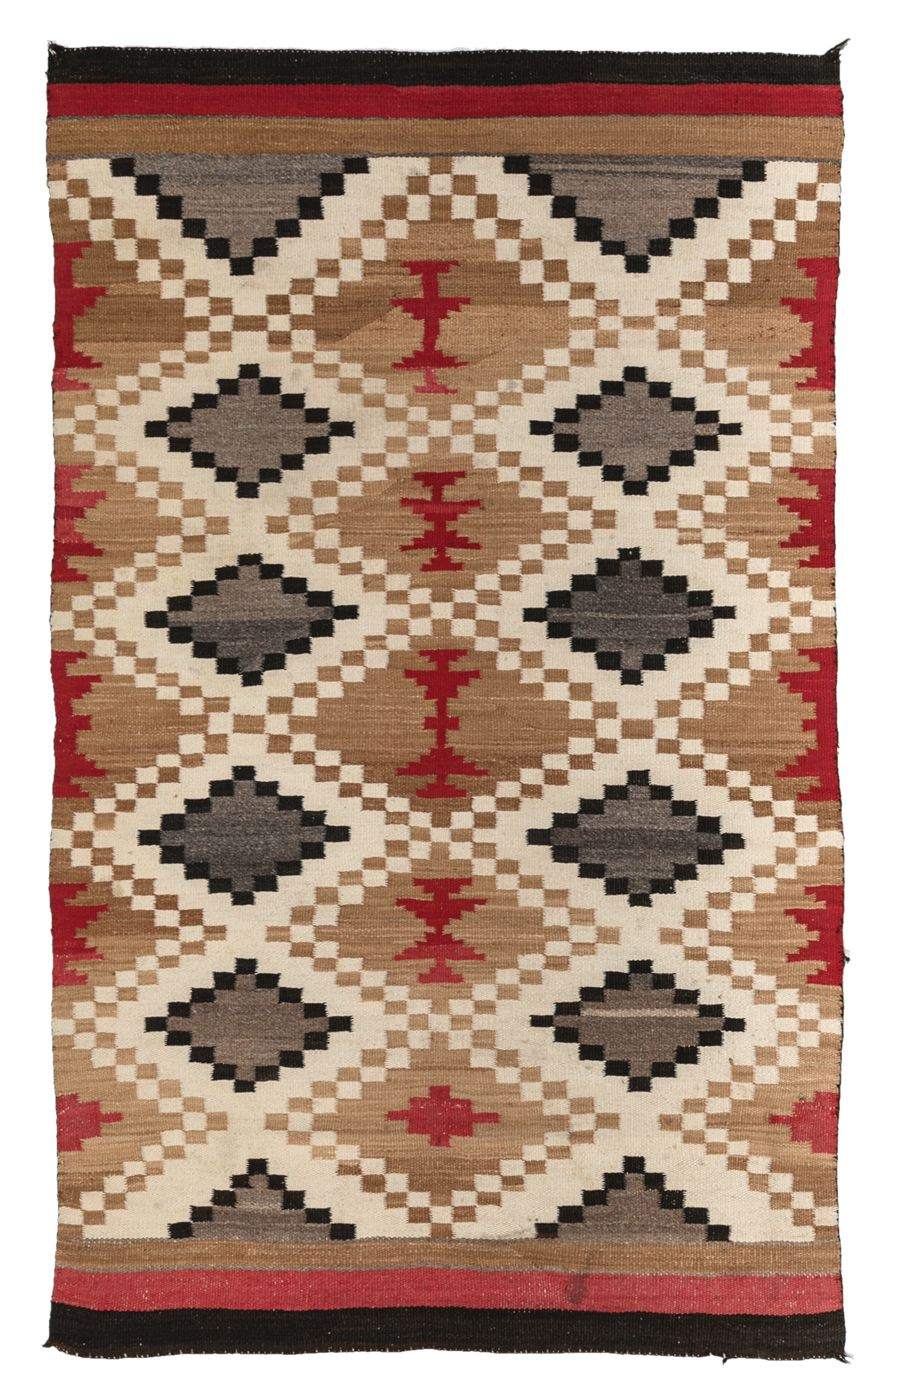 Navajo Weaving Navajo Rug With Symmetrical Checkered Diamond